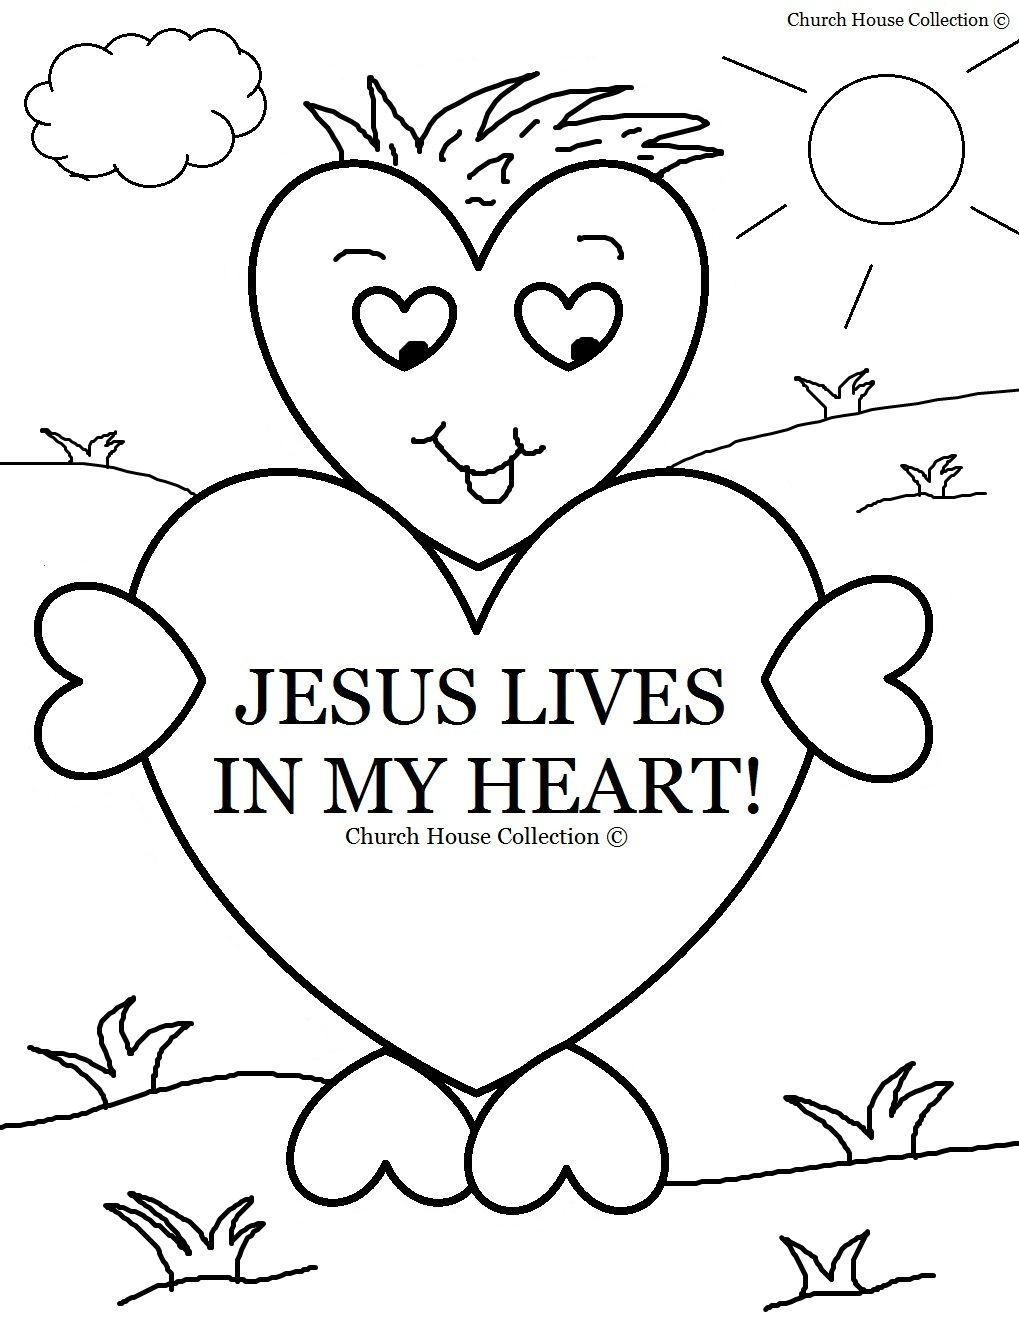 Unusual Sunday School Coloring Pages For Preschoolers Free Church